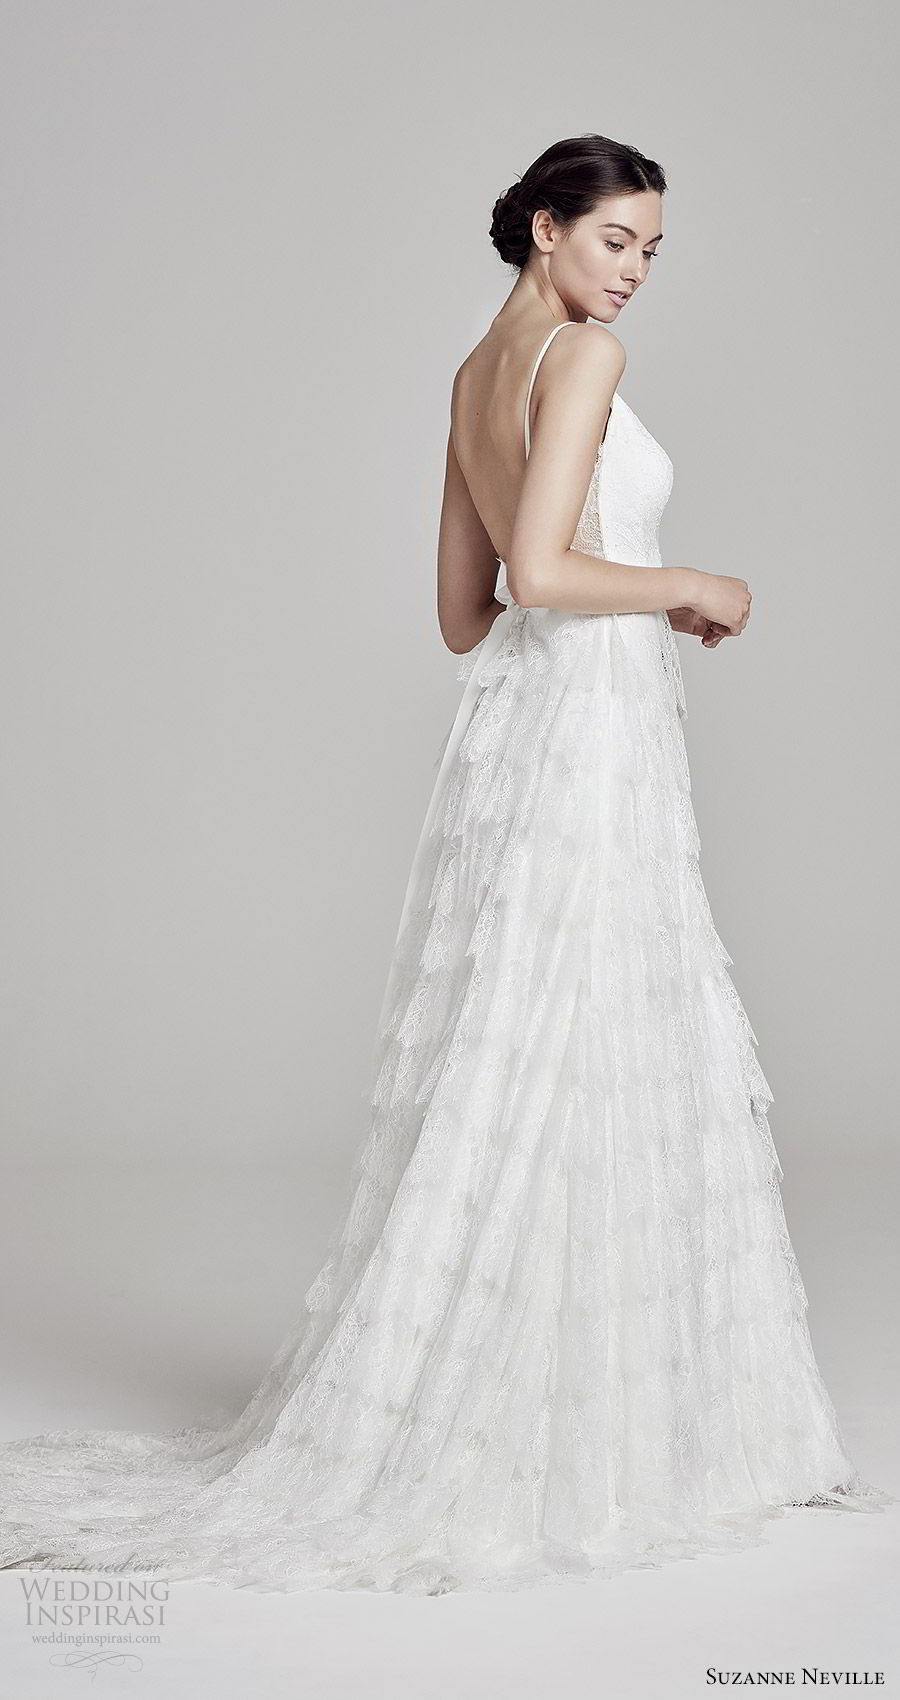 suzanne neville bridal 2019 sleeveless thin straps sweetheart neckline tiered skirt lace a line wedding dress (anais) low back chapel train bv